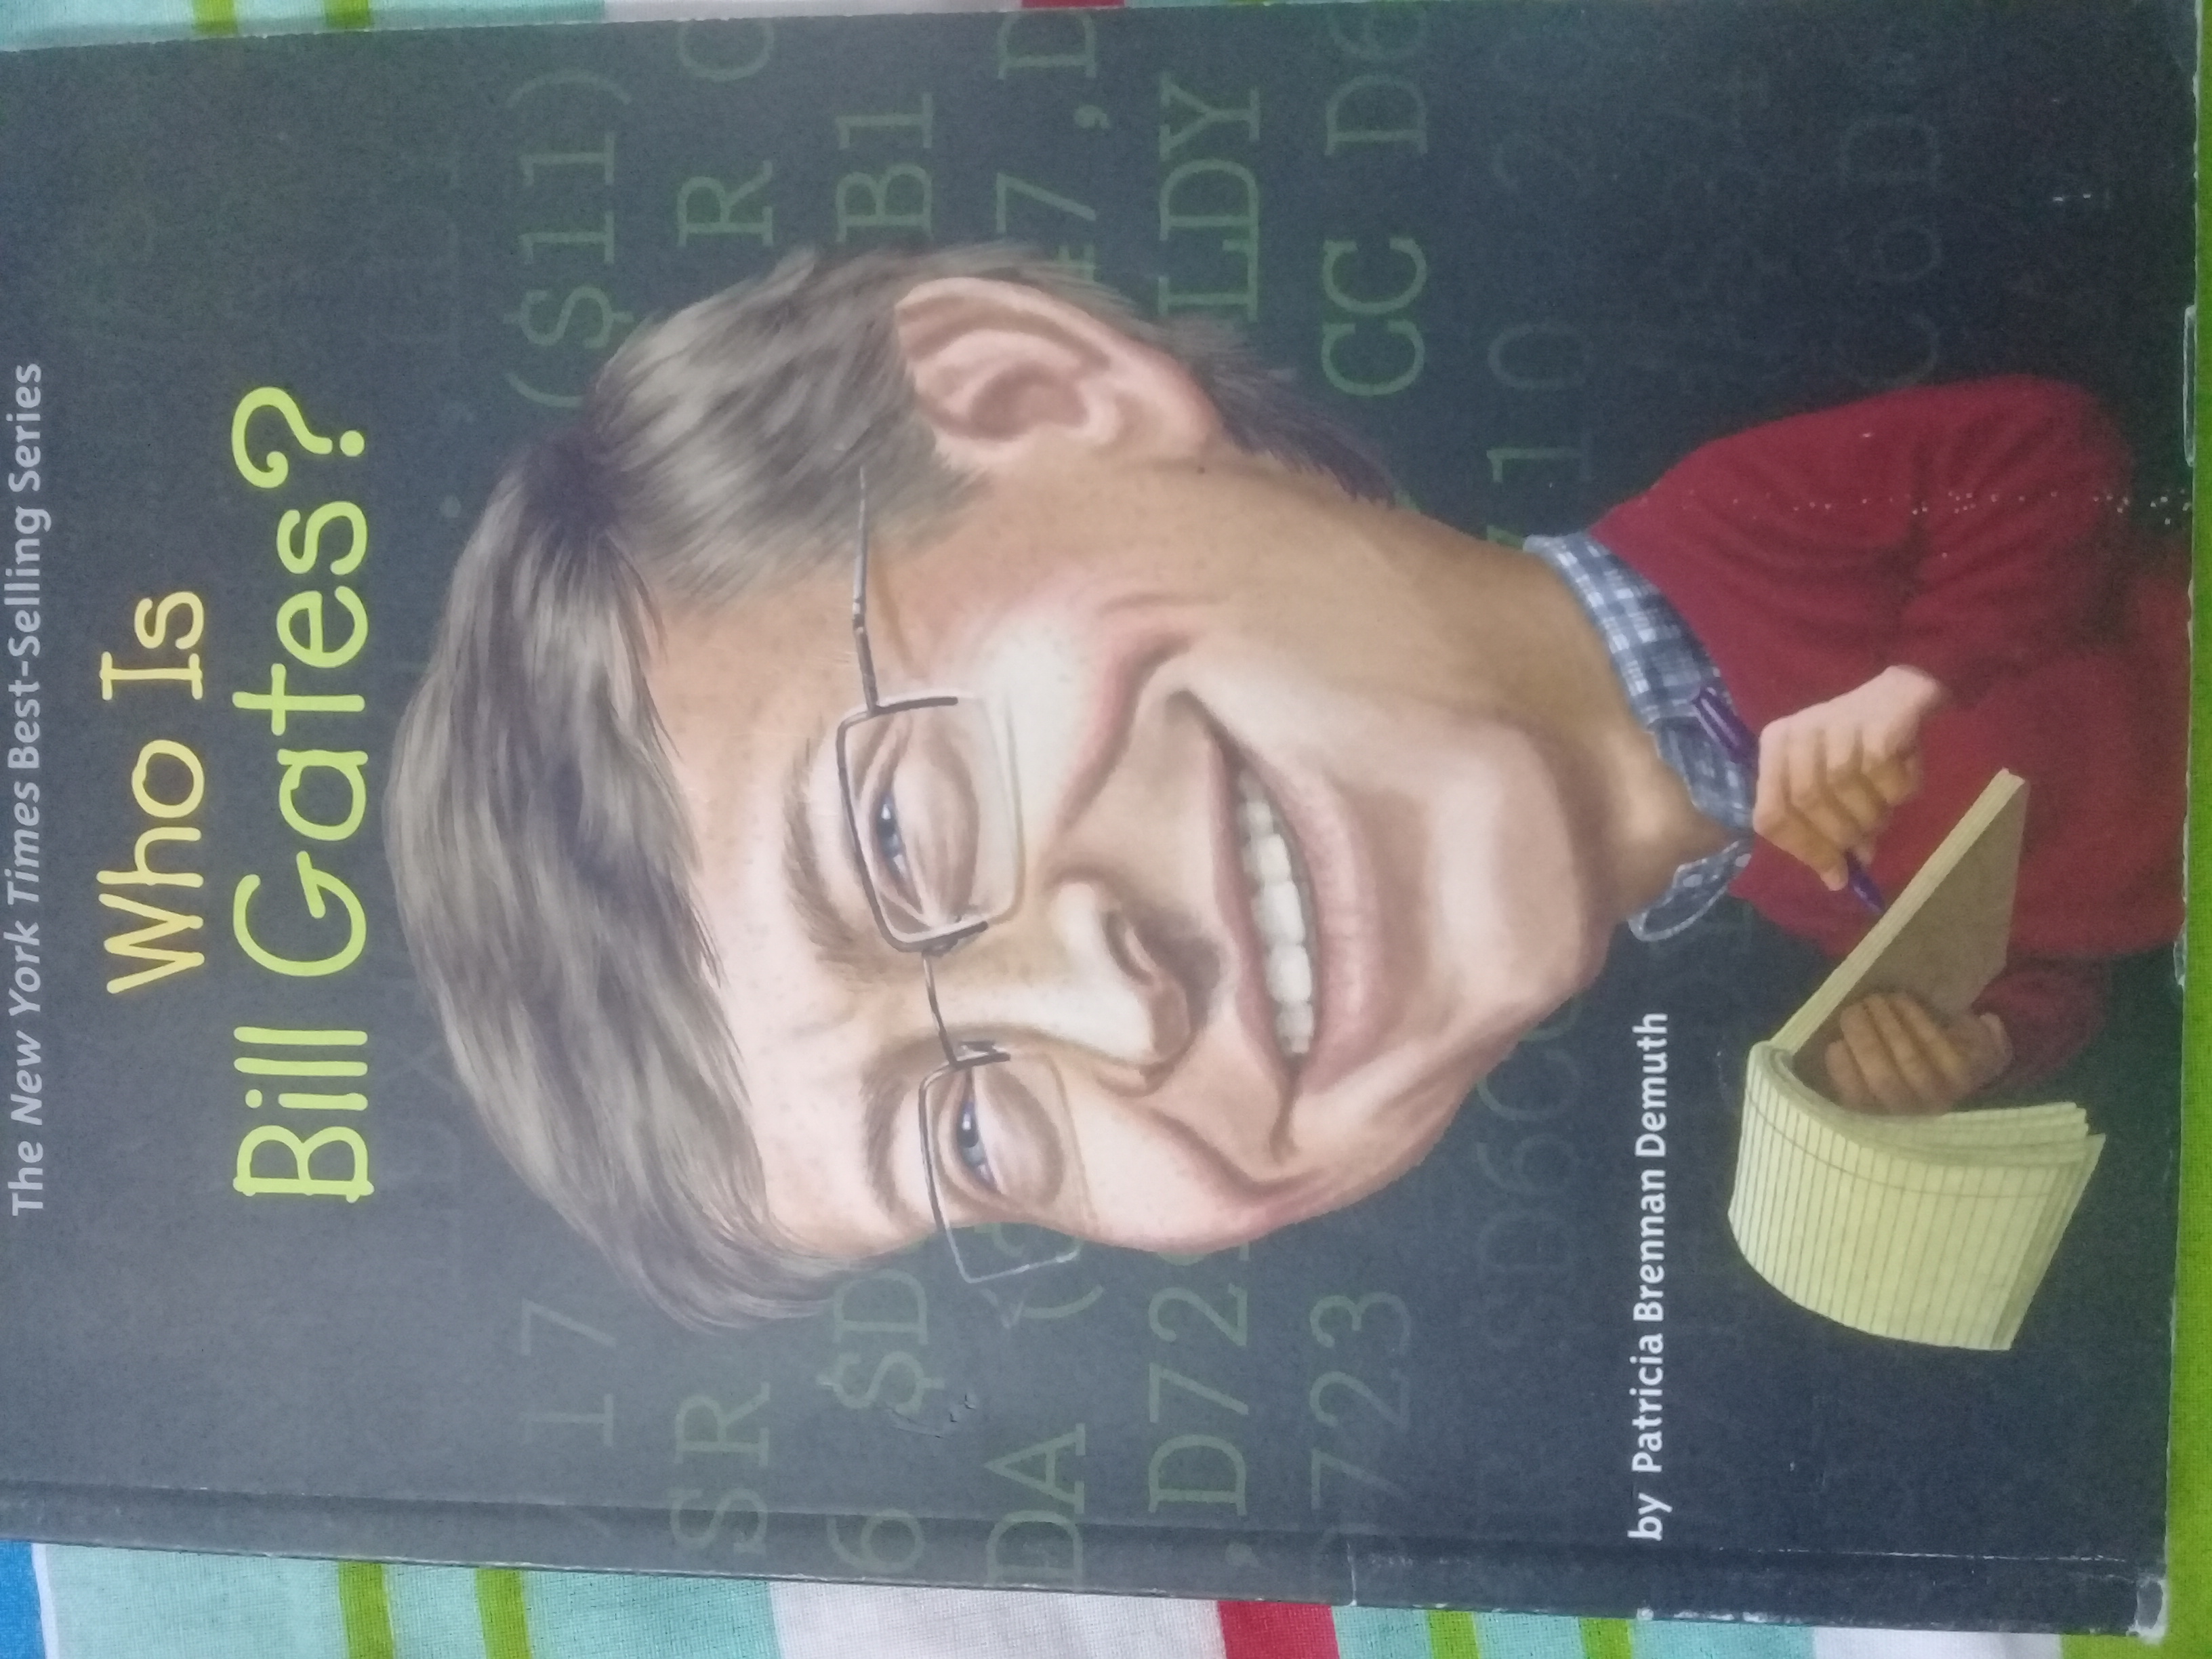 who is bill gates ?